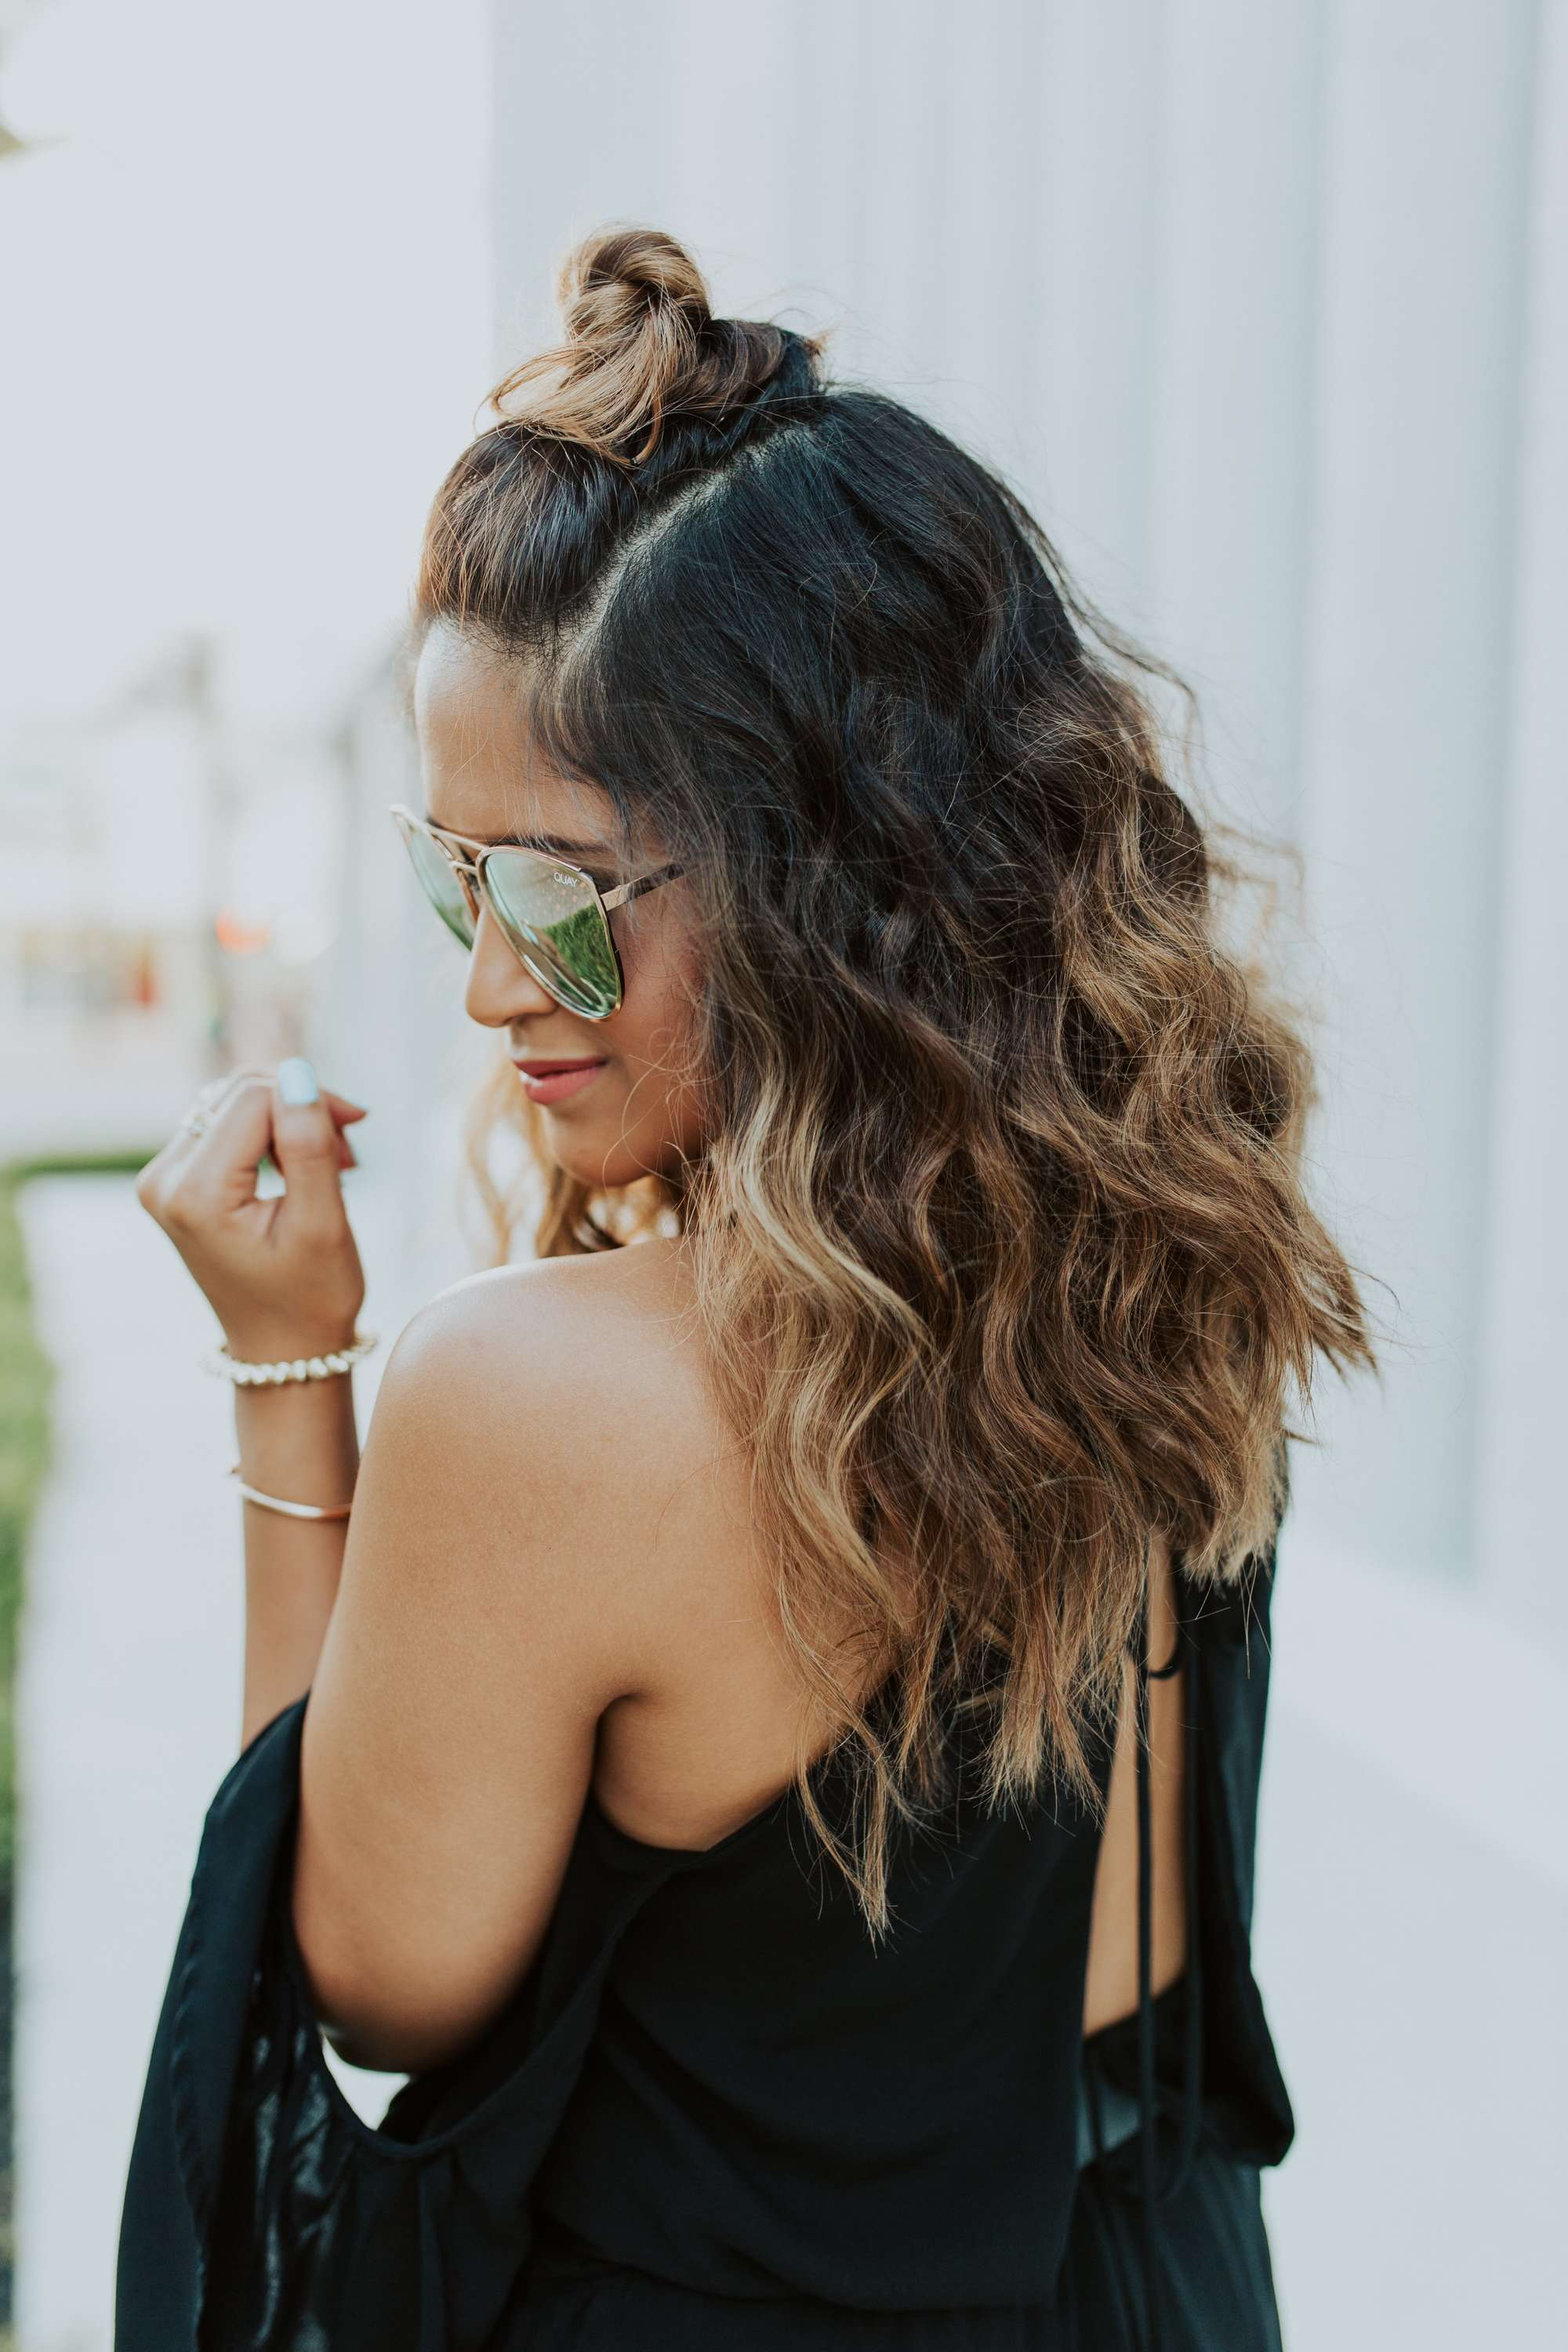 natural wavy hair: close up shot of woman with wavy brown to blonde ombre hair styled into a half-up topknot, wearing a black dress and sunglasses, posing outside